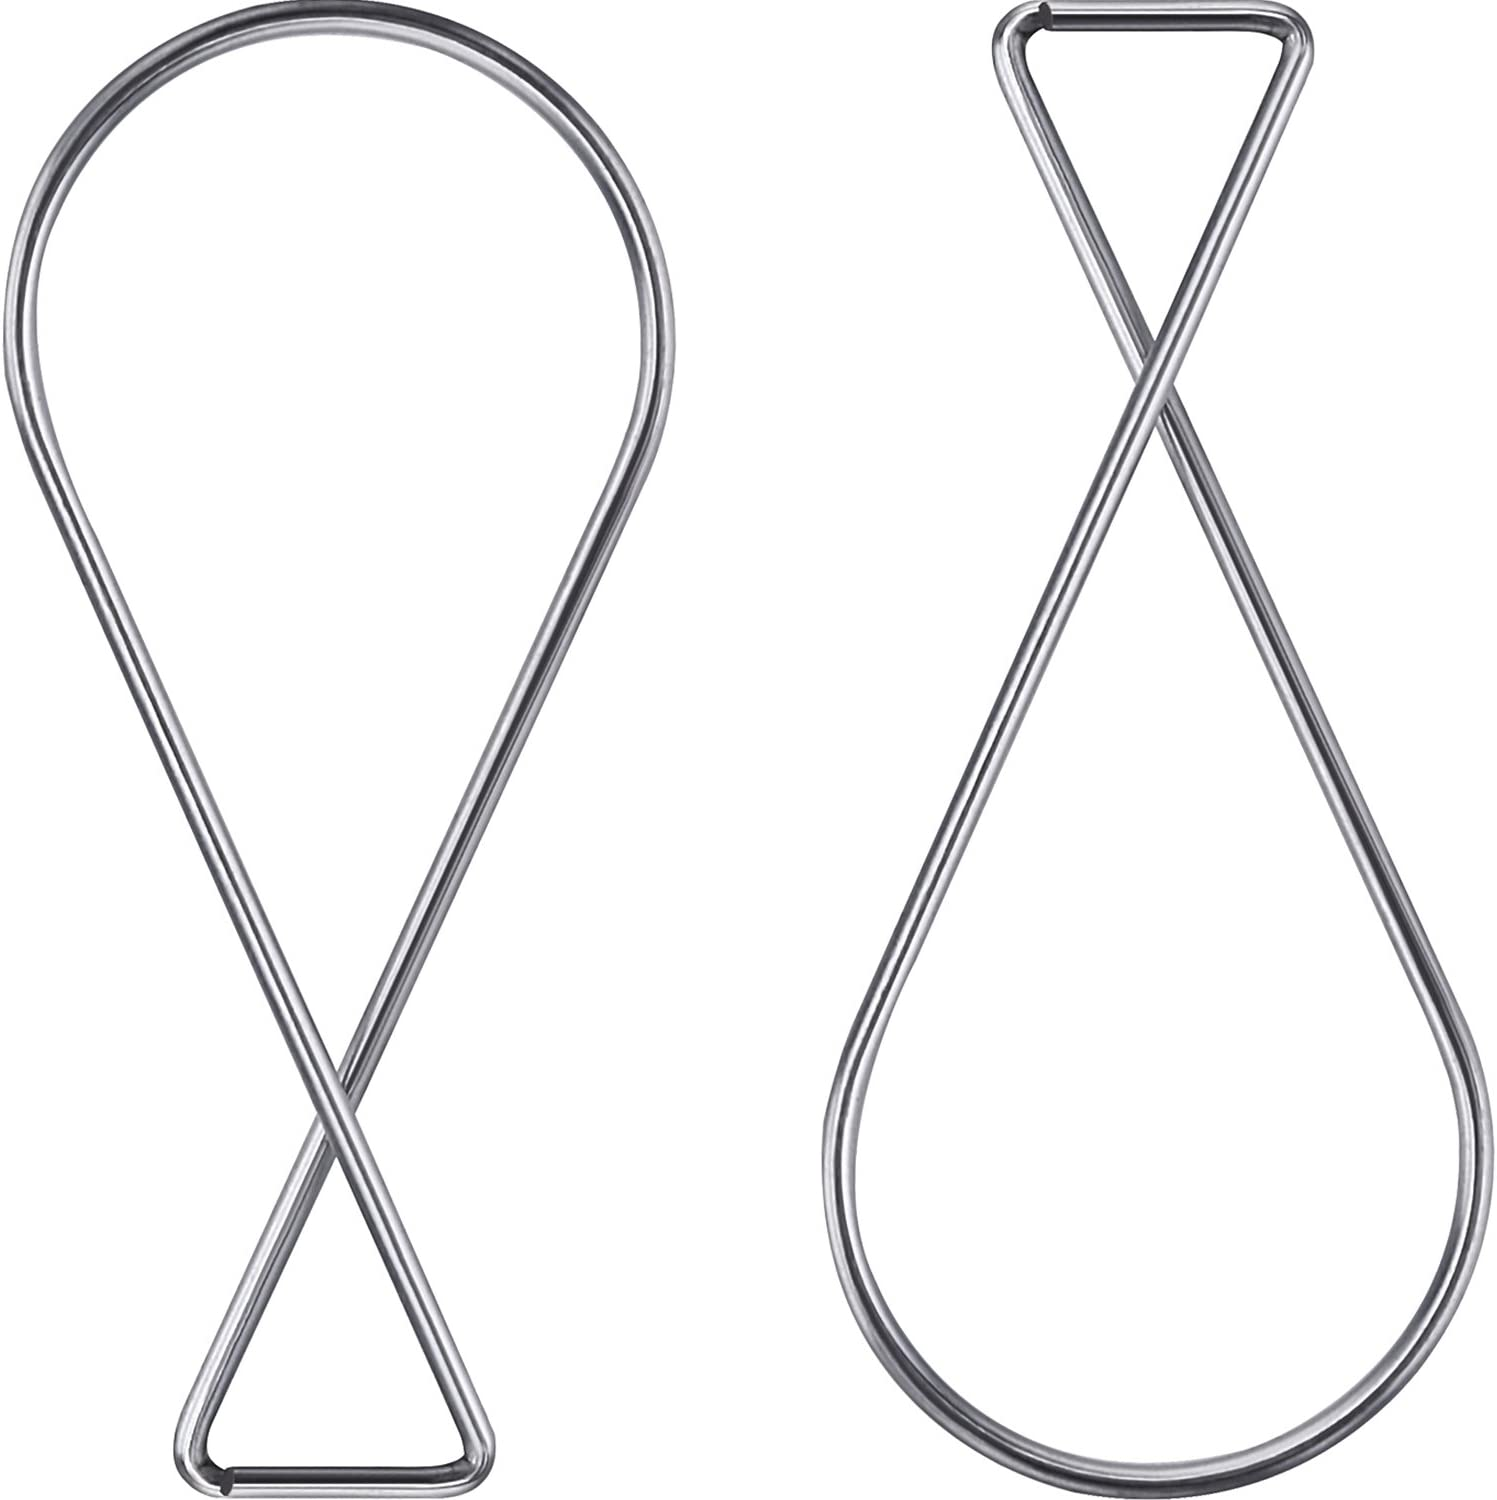 Ceiling Hook Clips Ceiling Tile Hooks T-bar Clips Drop Ceiling Clips for Office, Classroom, Home and Wedding Decoration, Hanging Sign from Suspended Tile/Grid/Drop Ceilings (100)